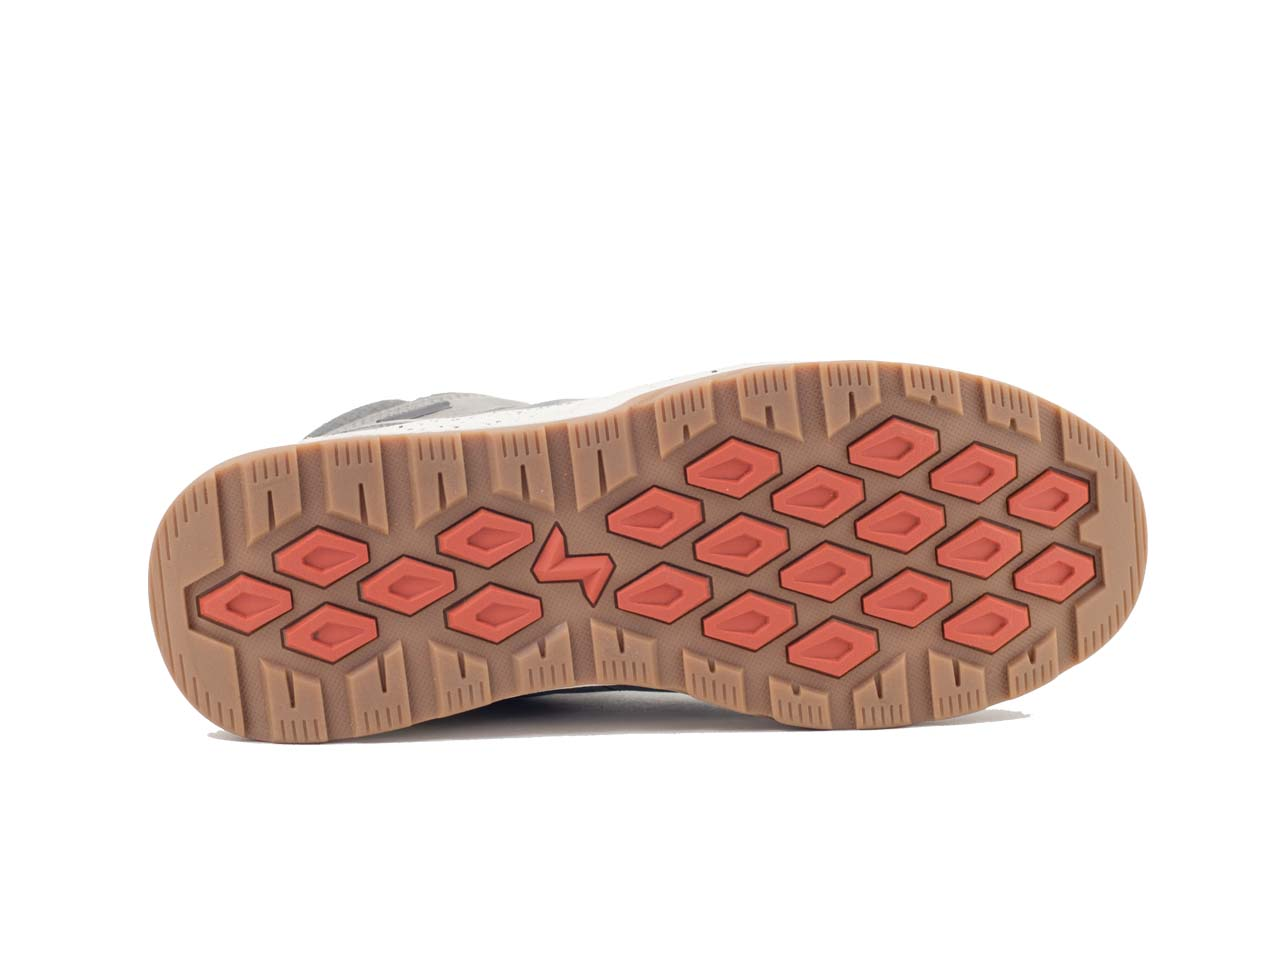 A look at the Forsake Trail's outsole. Photo courtesy of Forsake.